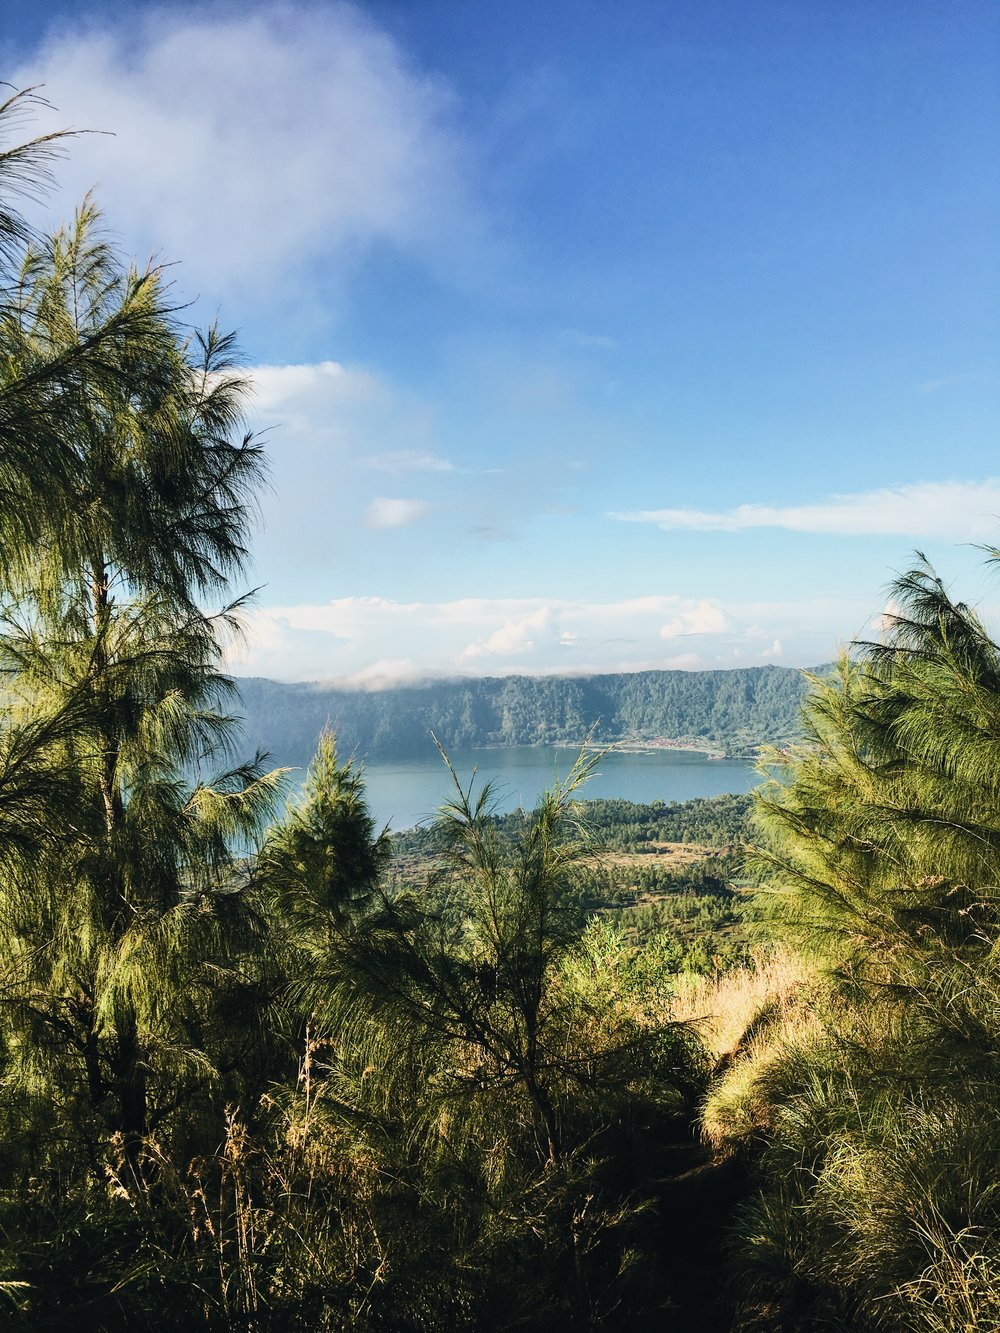 Kintamani Lake, Mount Batur Sunrise Hike, Bali, illumelation.com